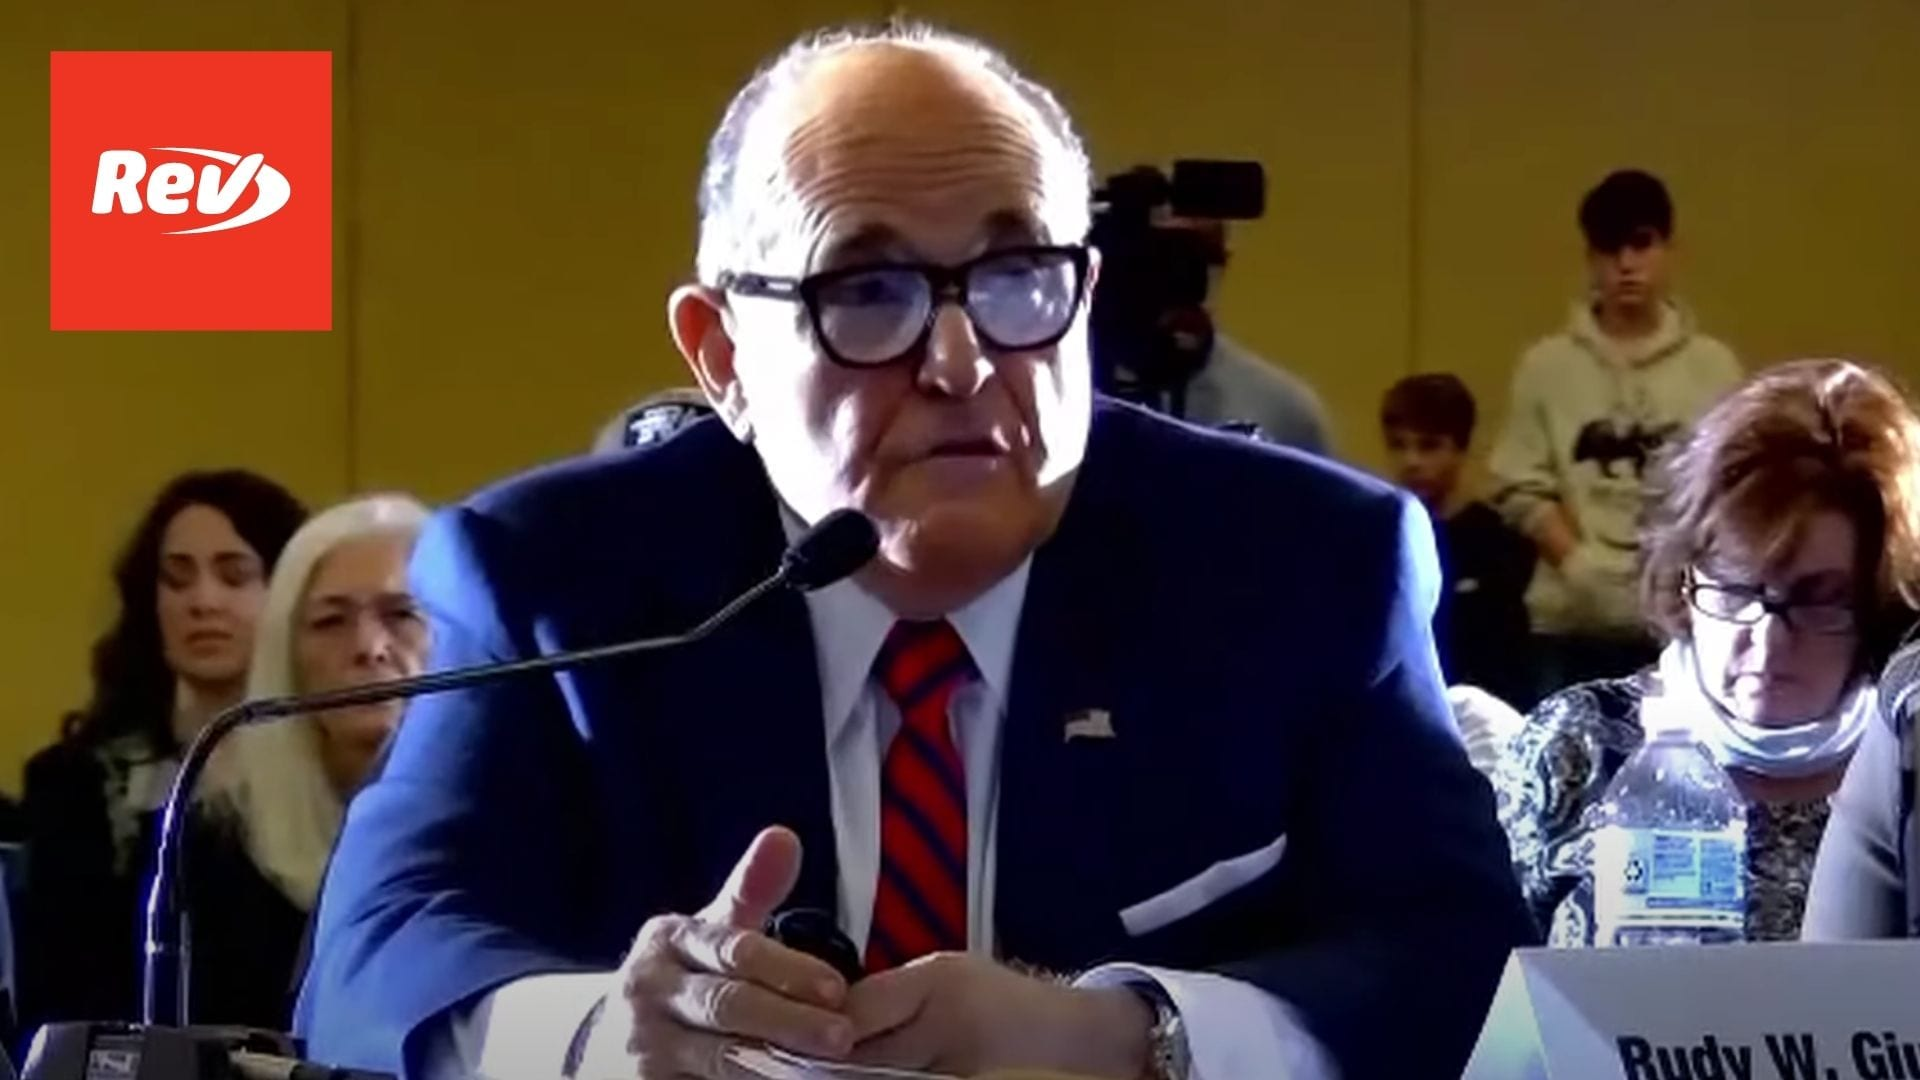 Rudy Giuliani Attends Hearing on Election Pennsylvania